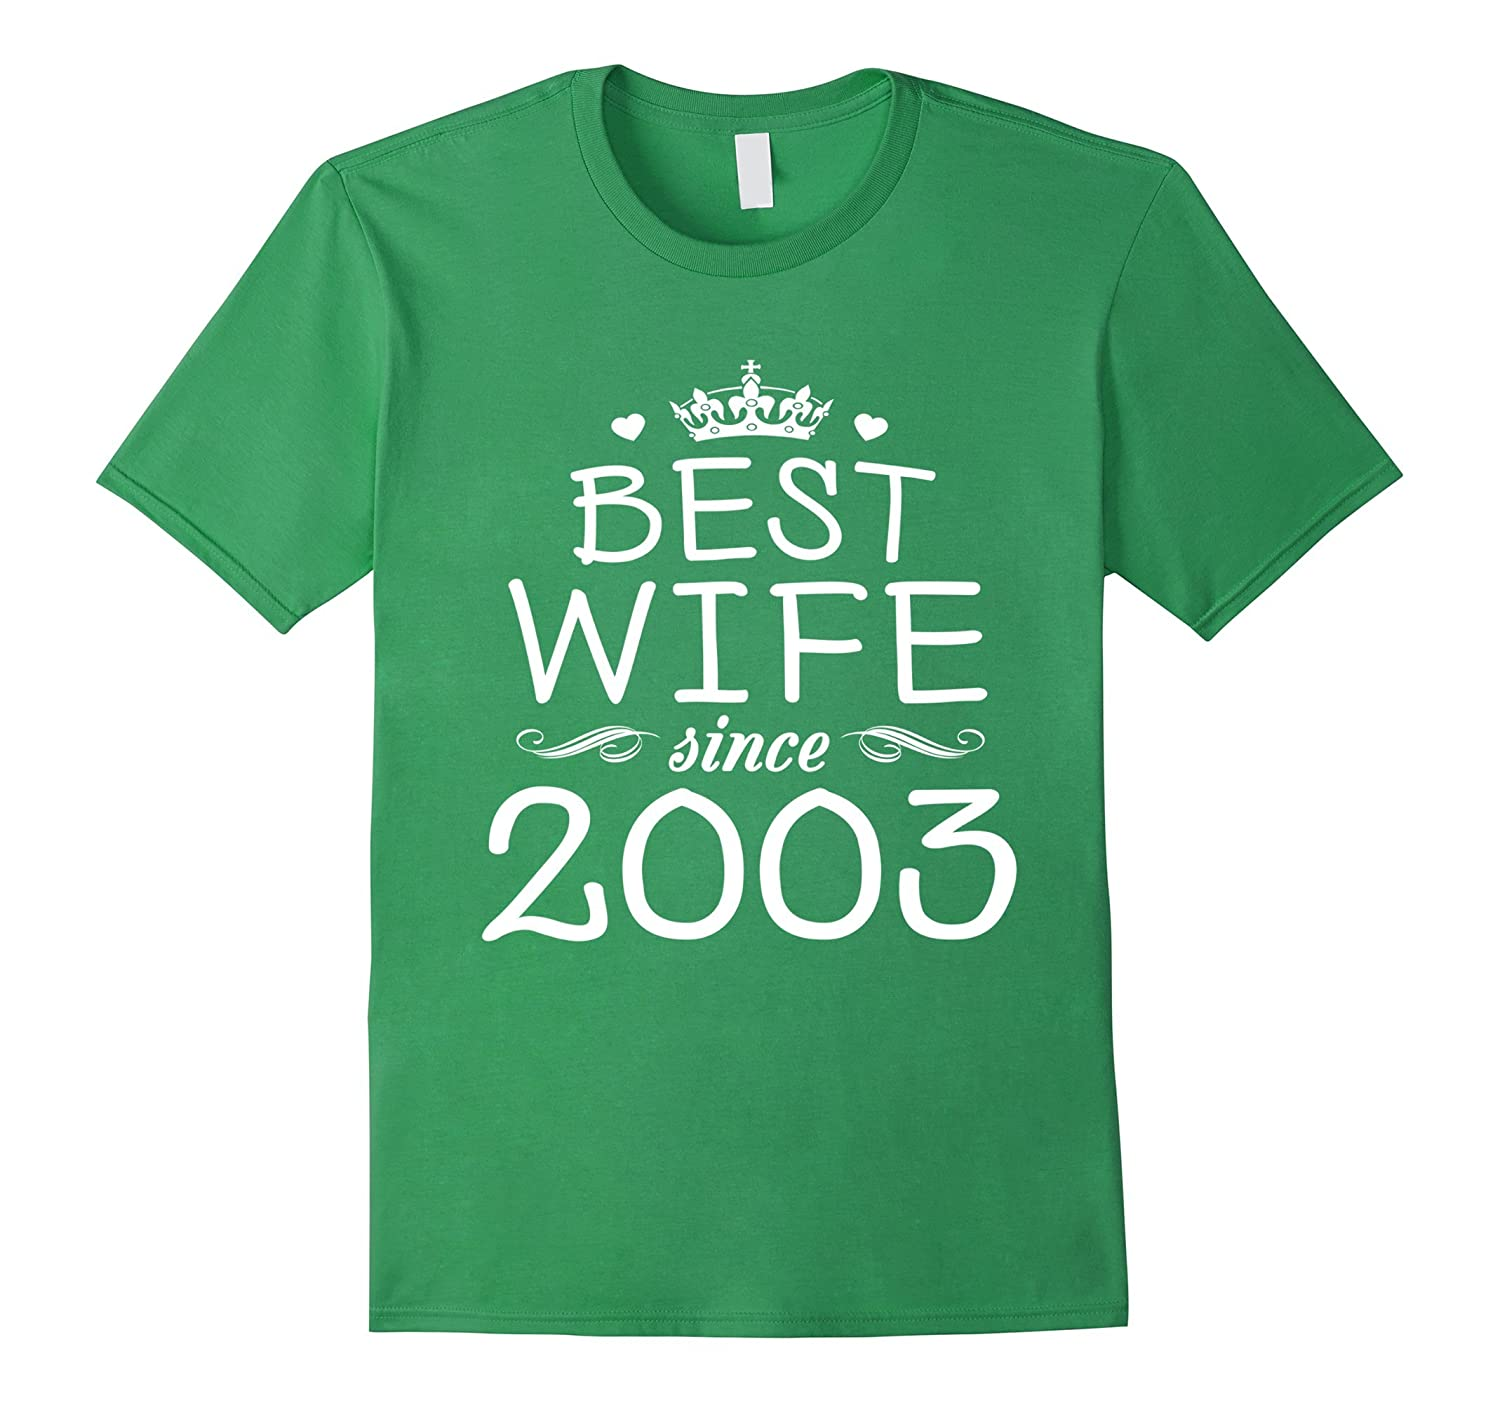 14th Year Wedding Anniversary Gift: 14th Wedding Anniversary Gift Ideas For Her-Wife Since